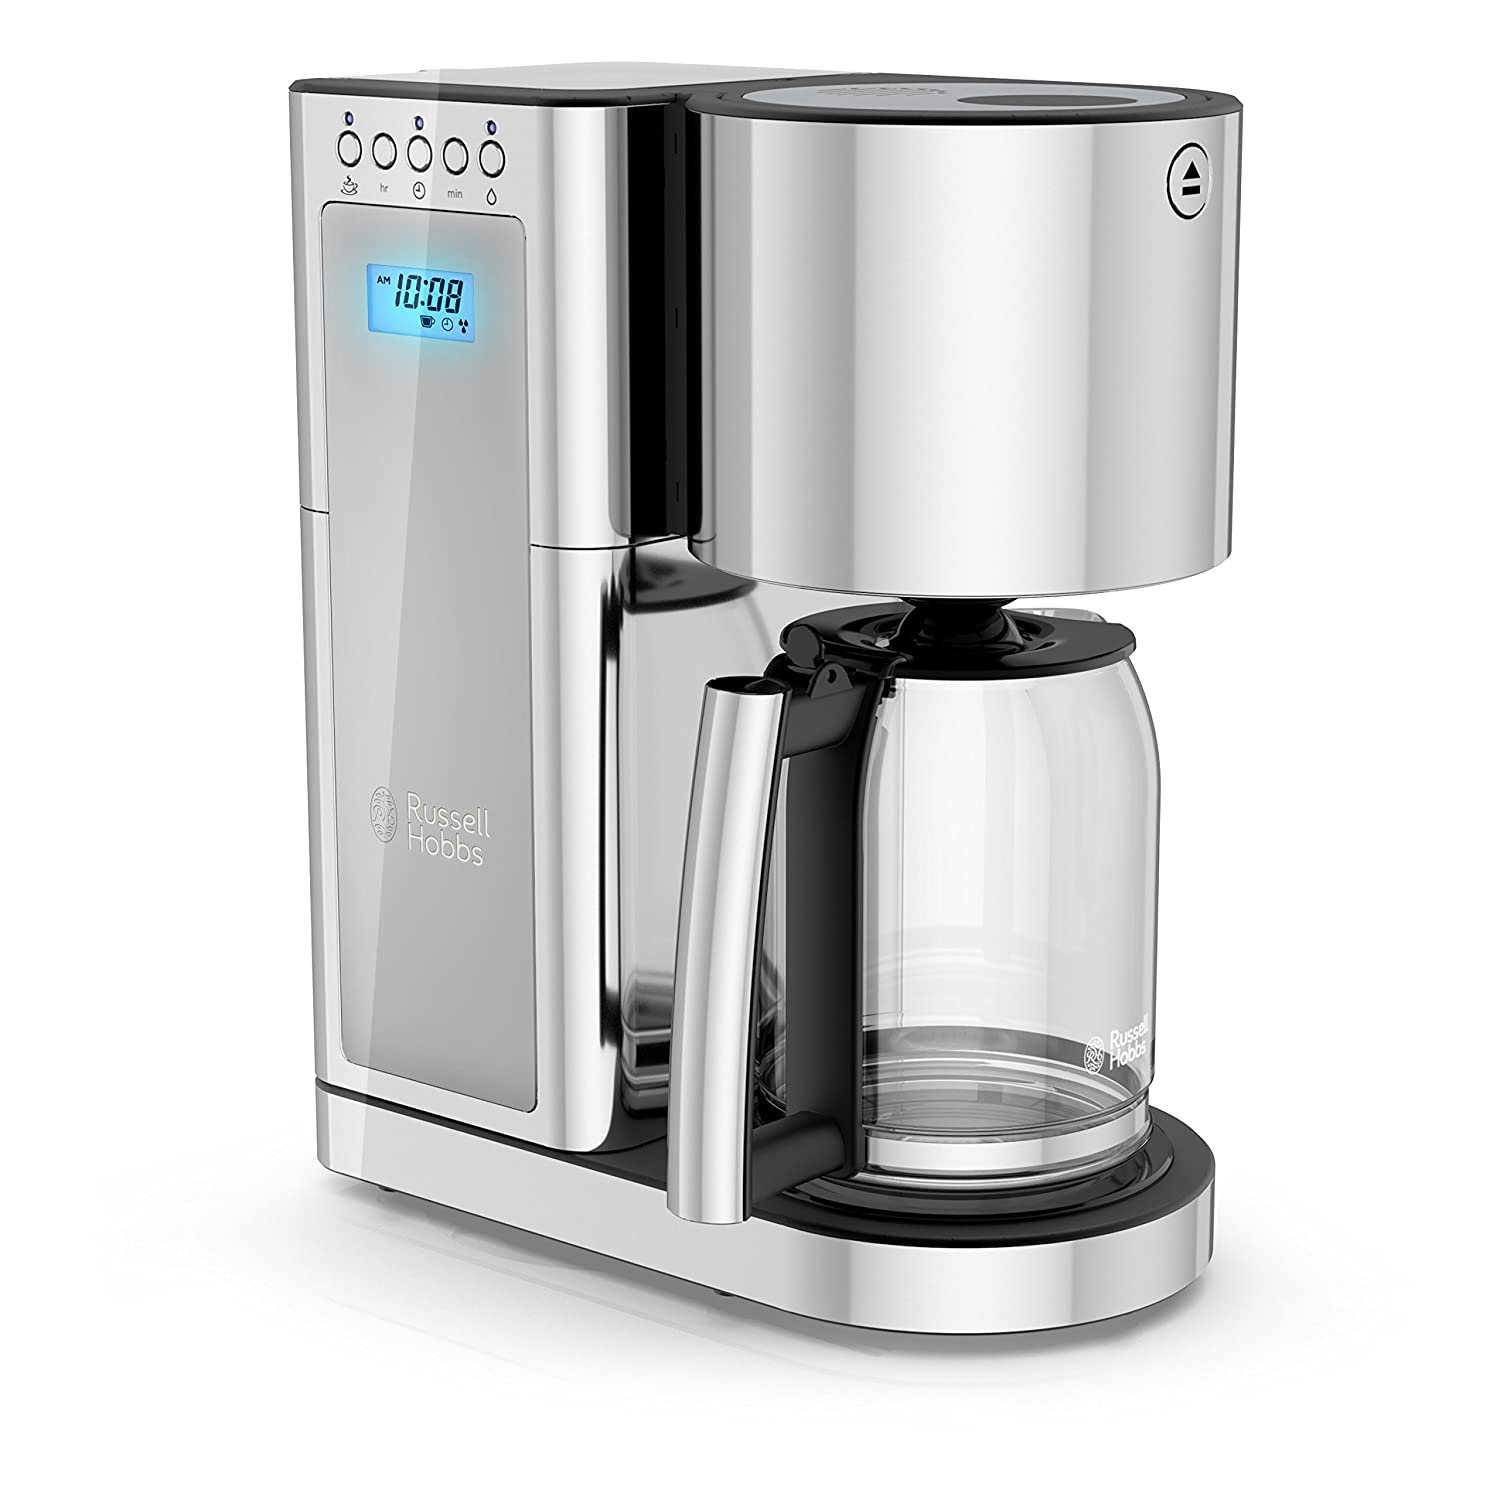 Russell Hobbs Glass Series 8-Cup Coffeemaker, Silver & Stainless Steel